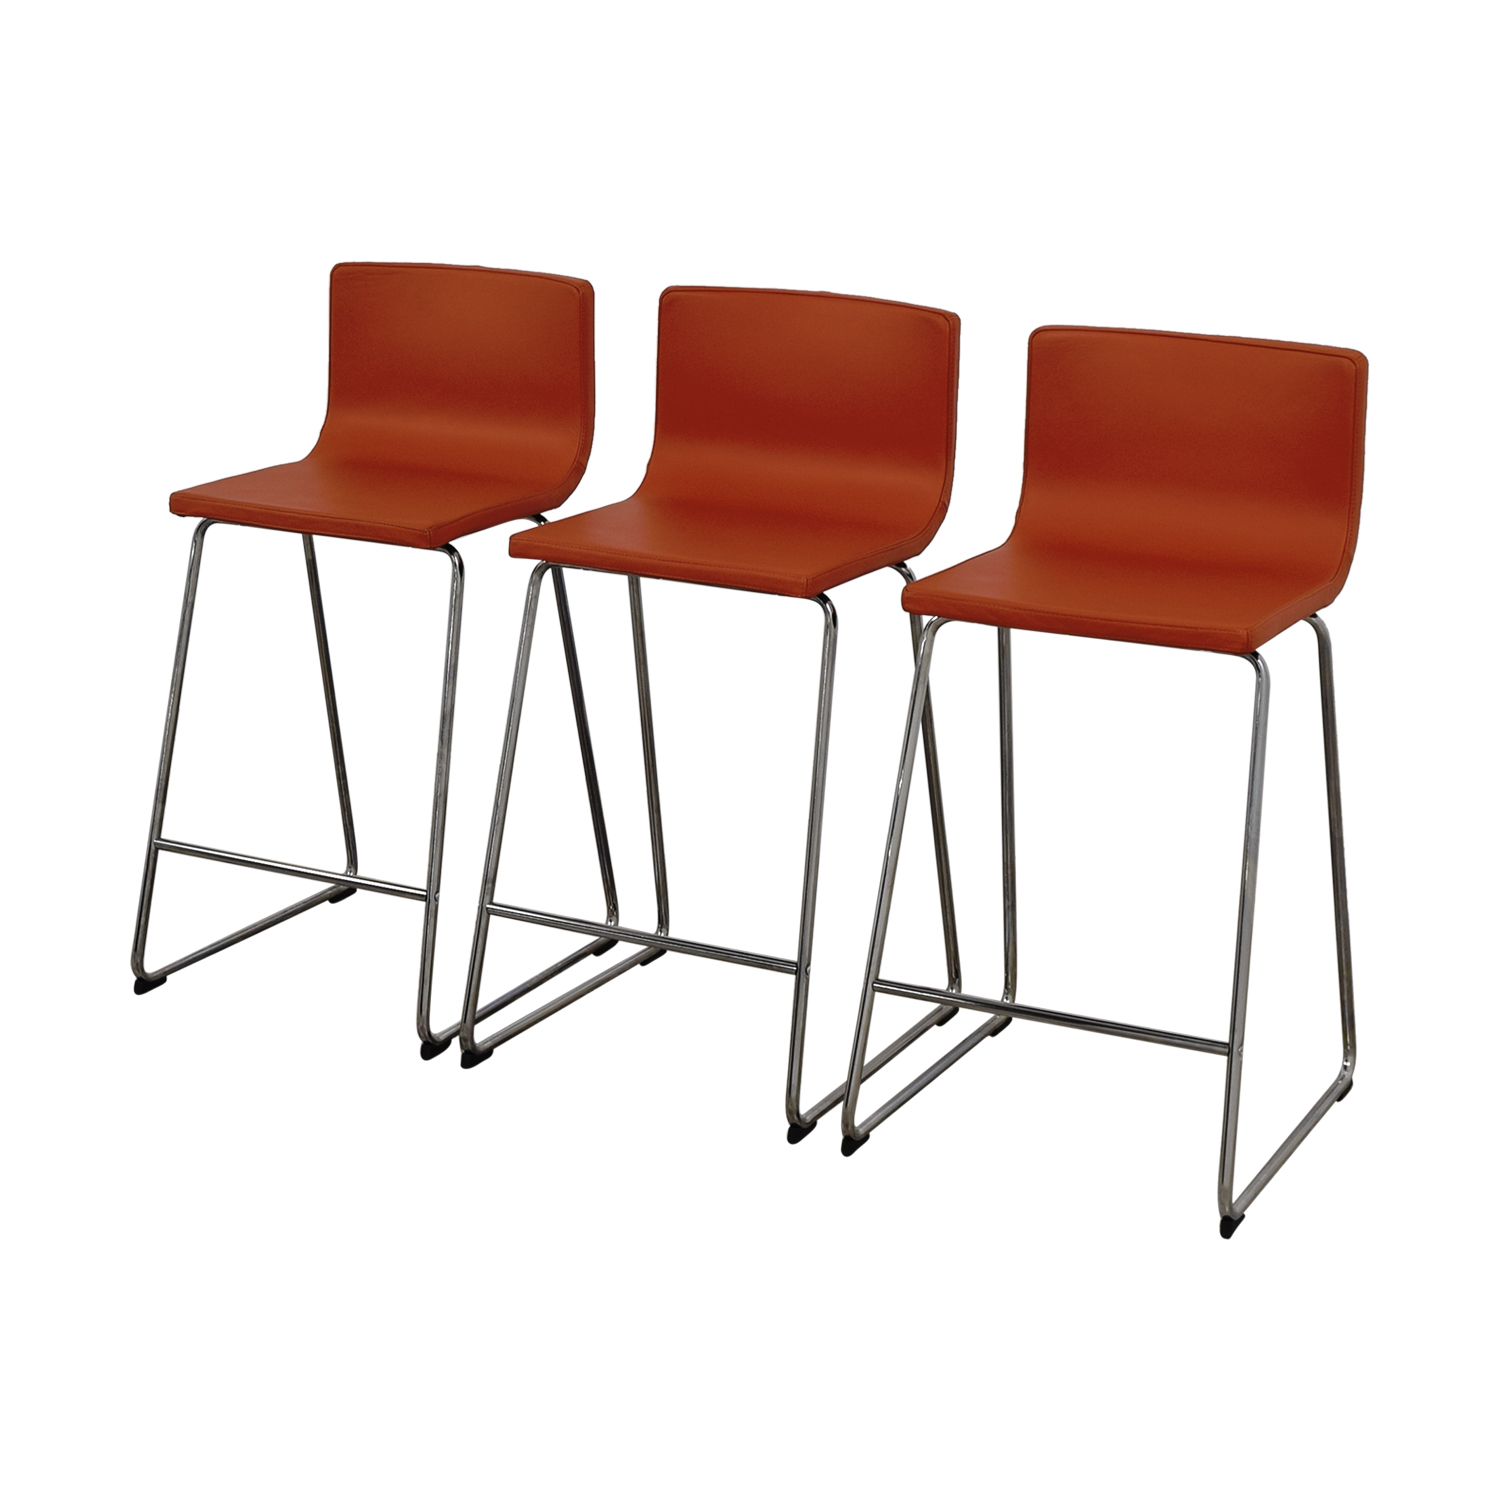 86 off ikea ikea bernhard orange bar stools chairs